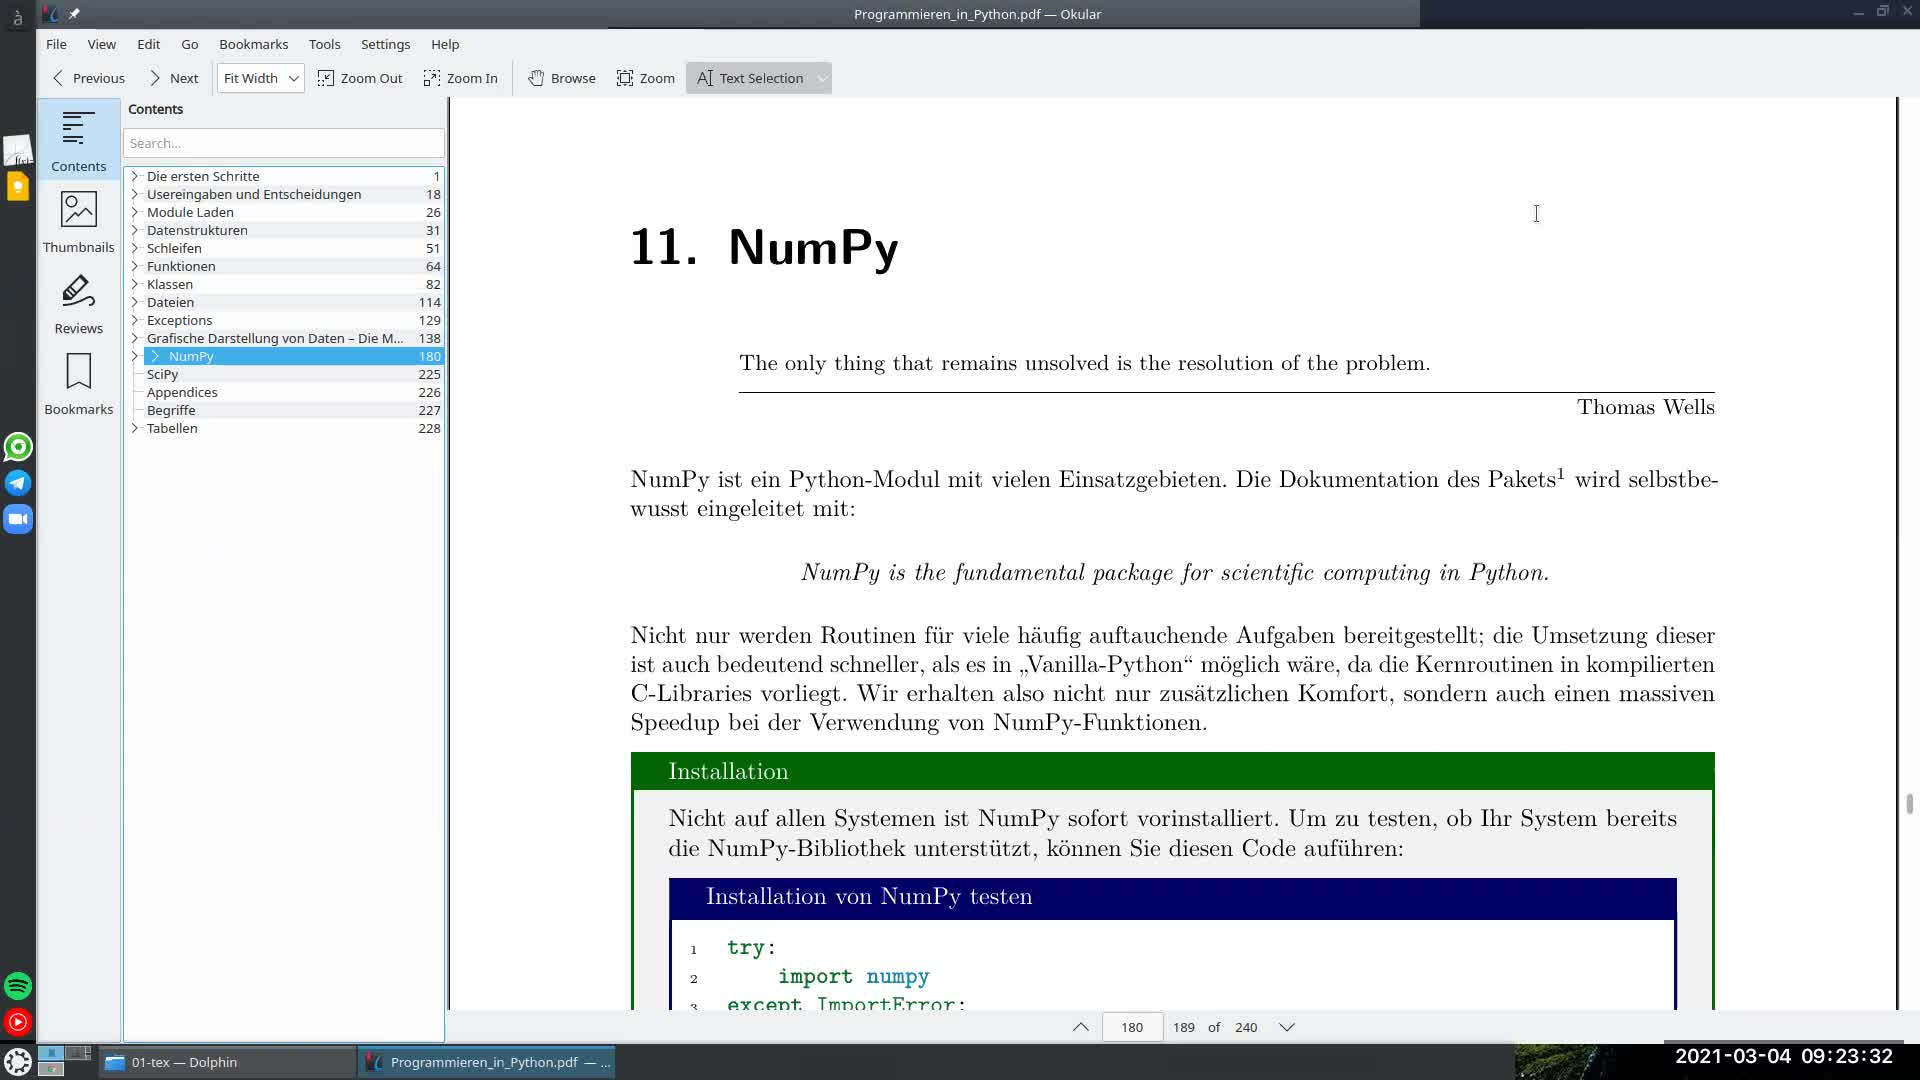 Lecture 09: NumPy